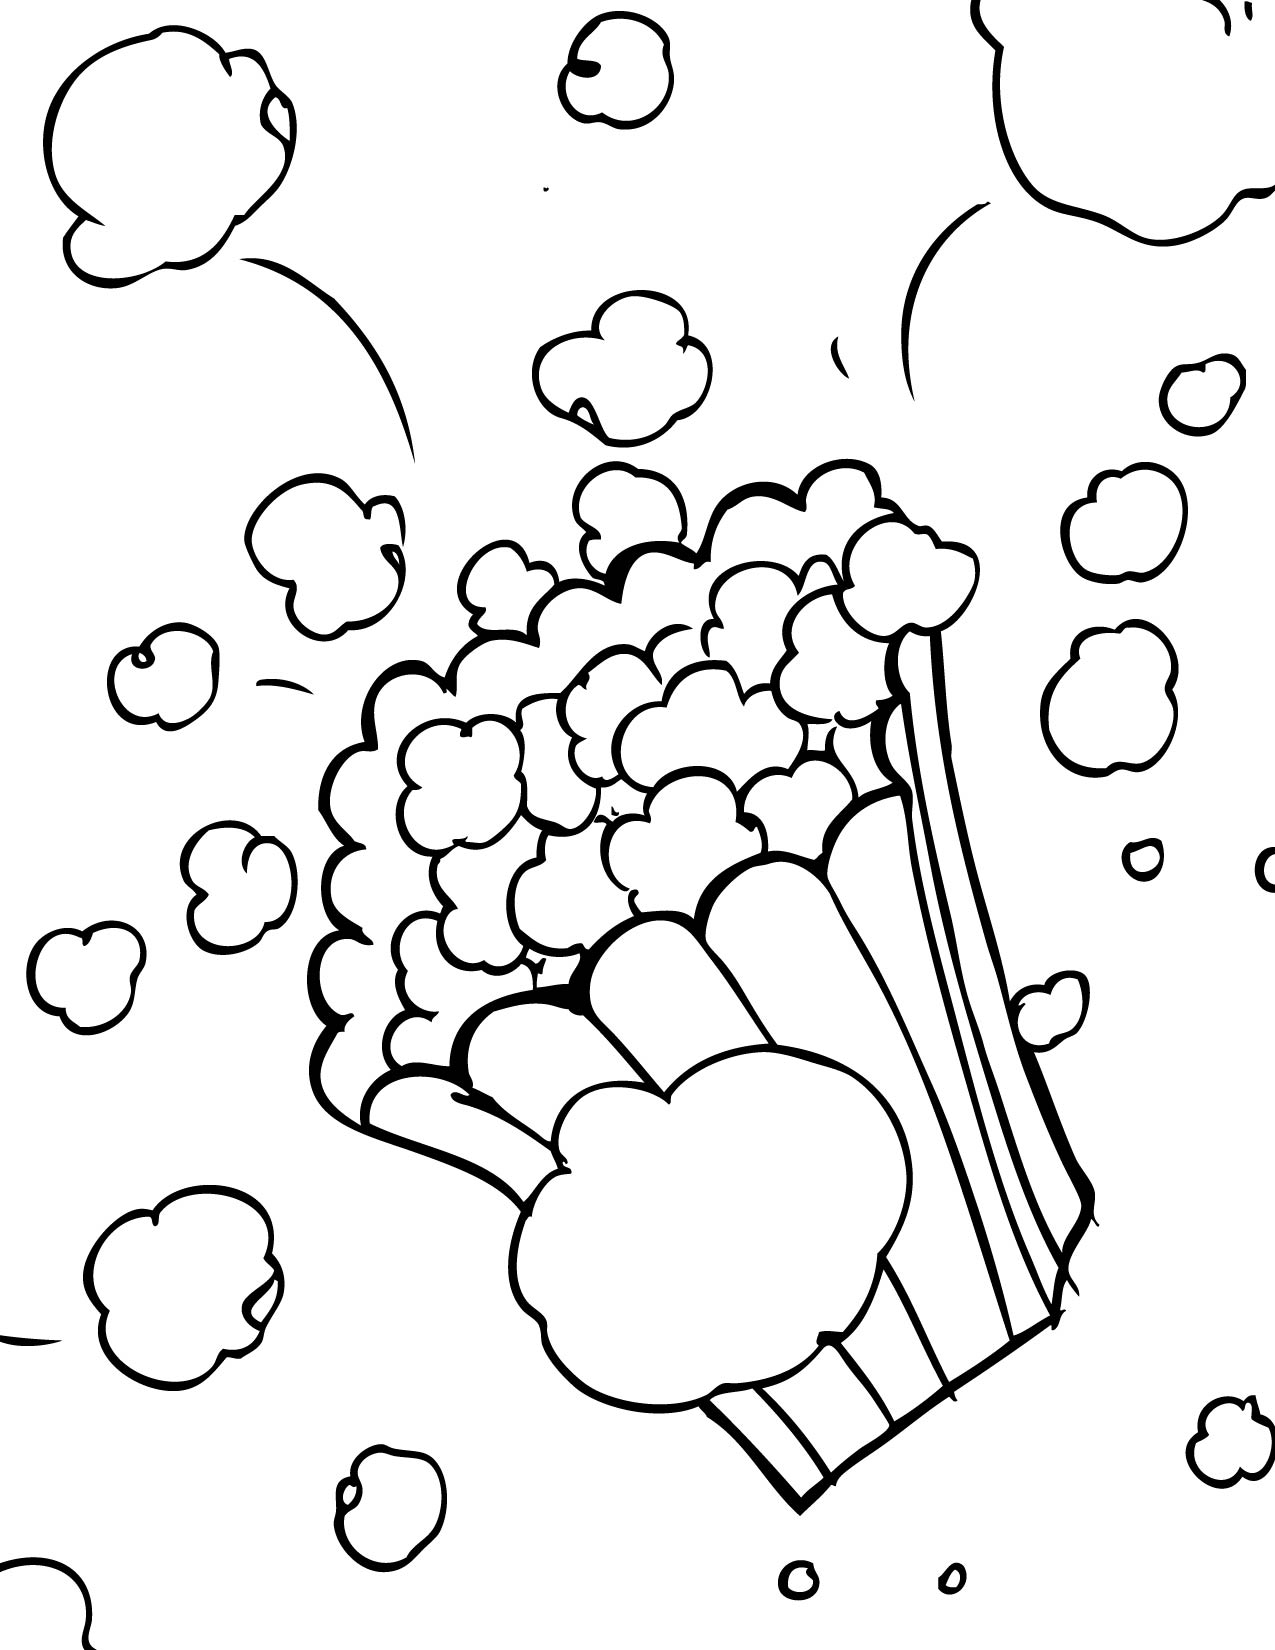 popcorn printable coloring pages - photo#8